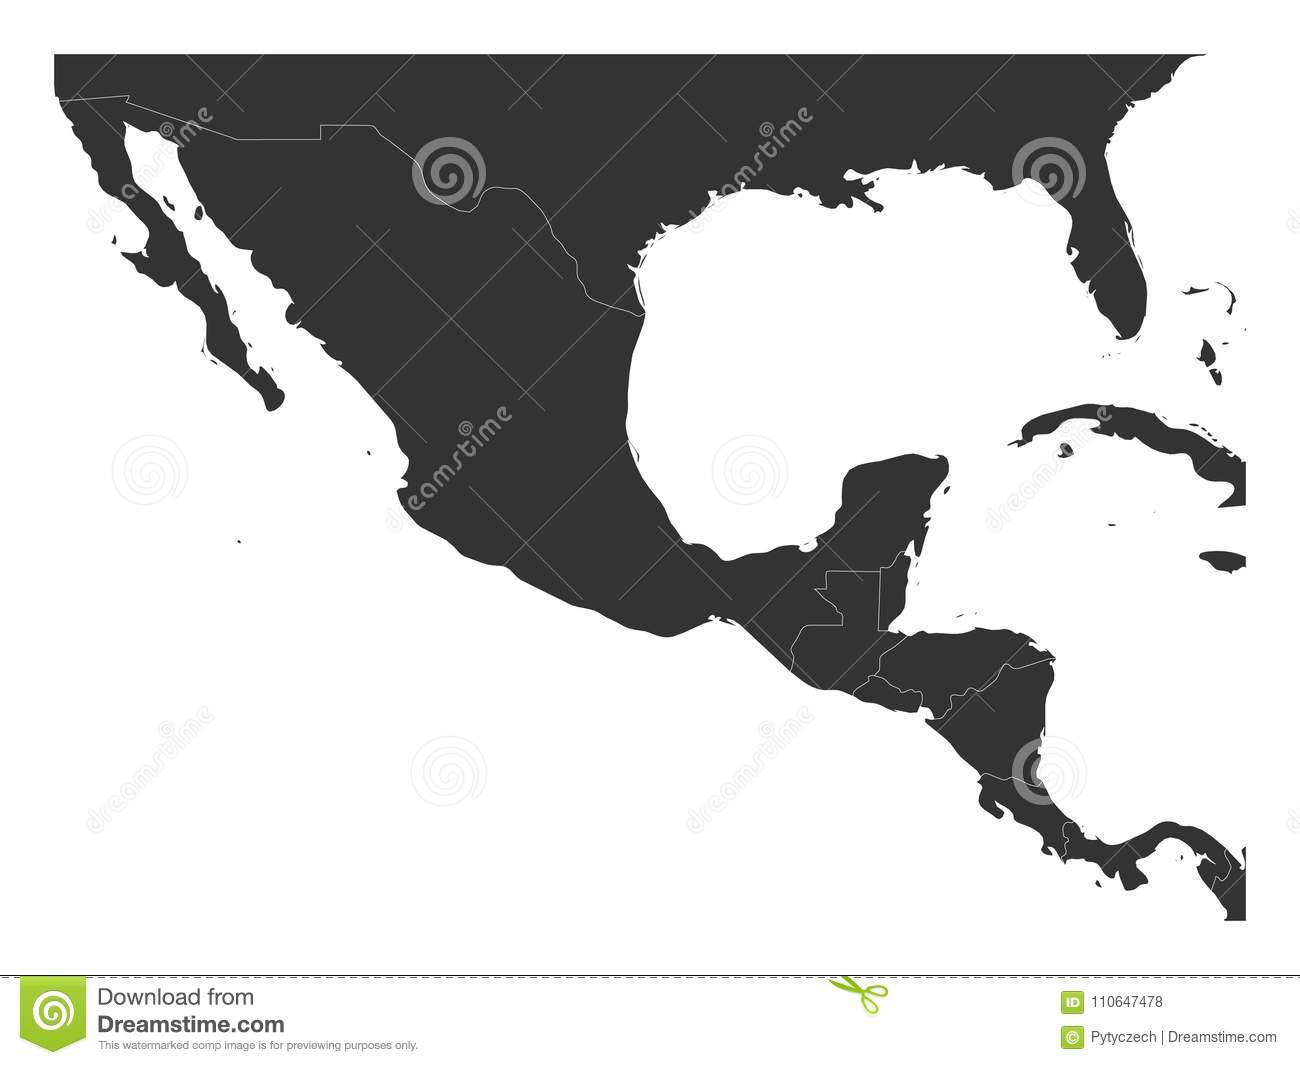 Blank Political Map Central America And Mexico Simple Dark Grey